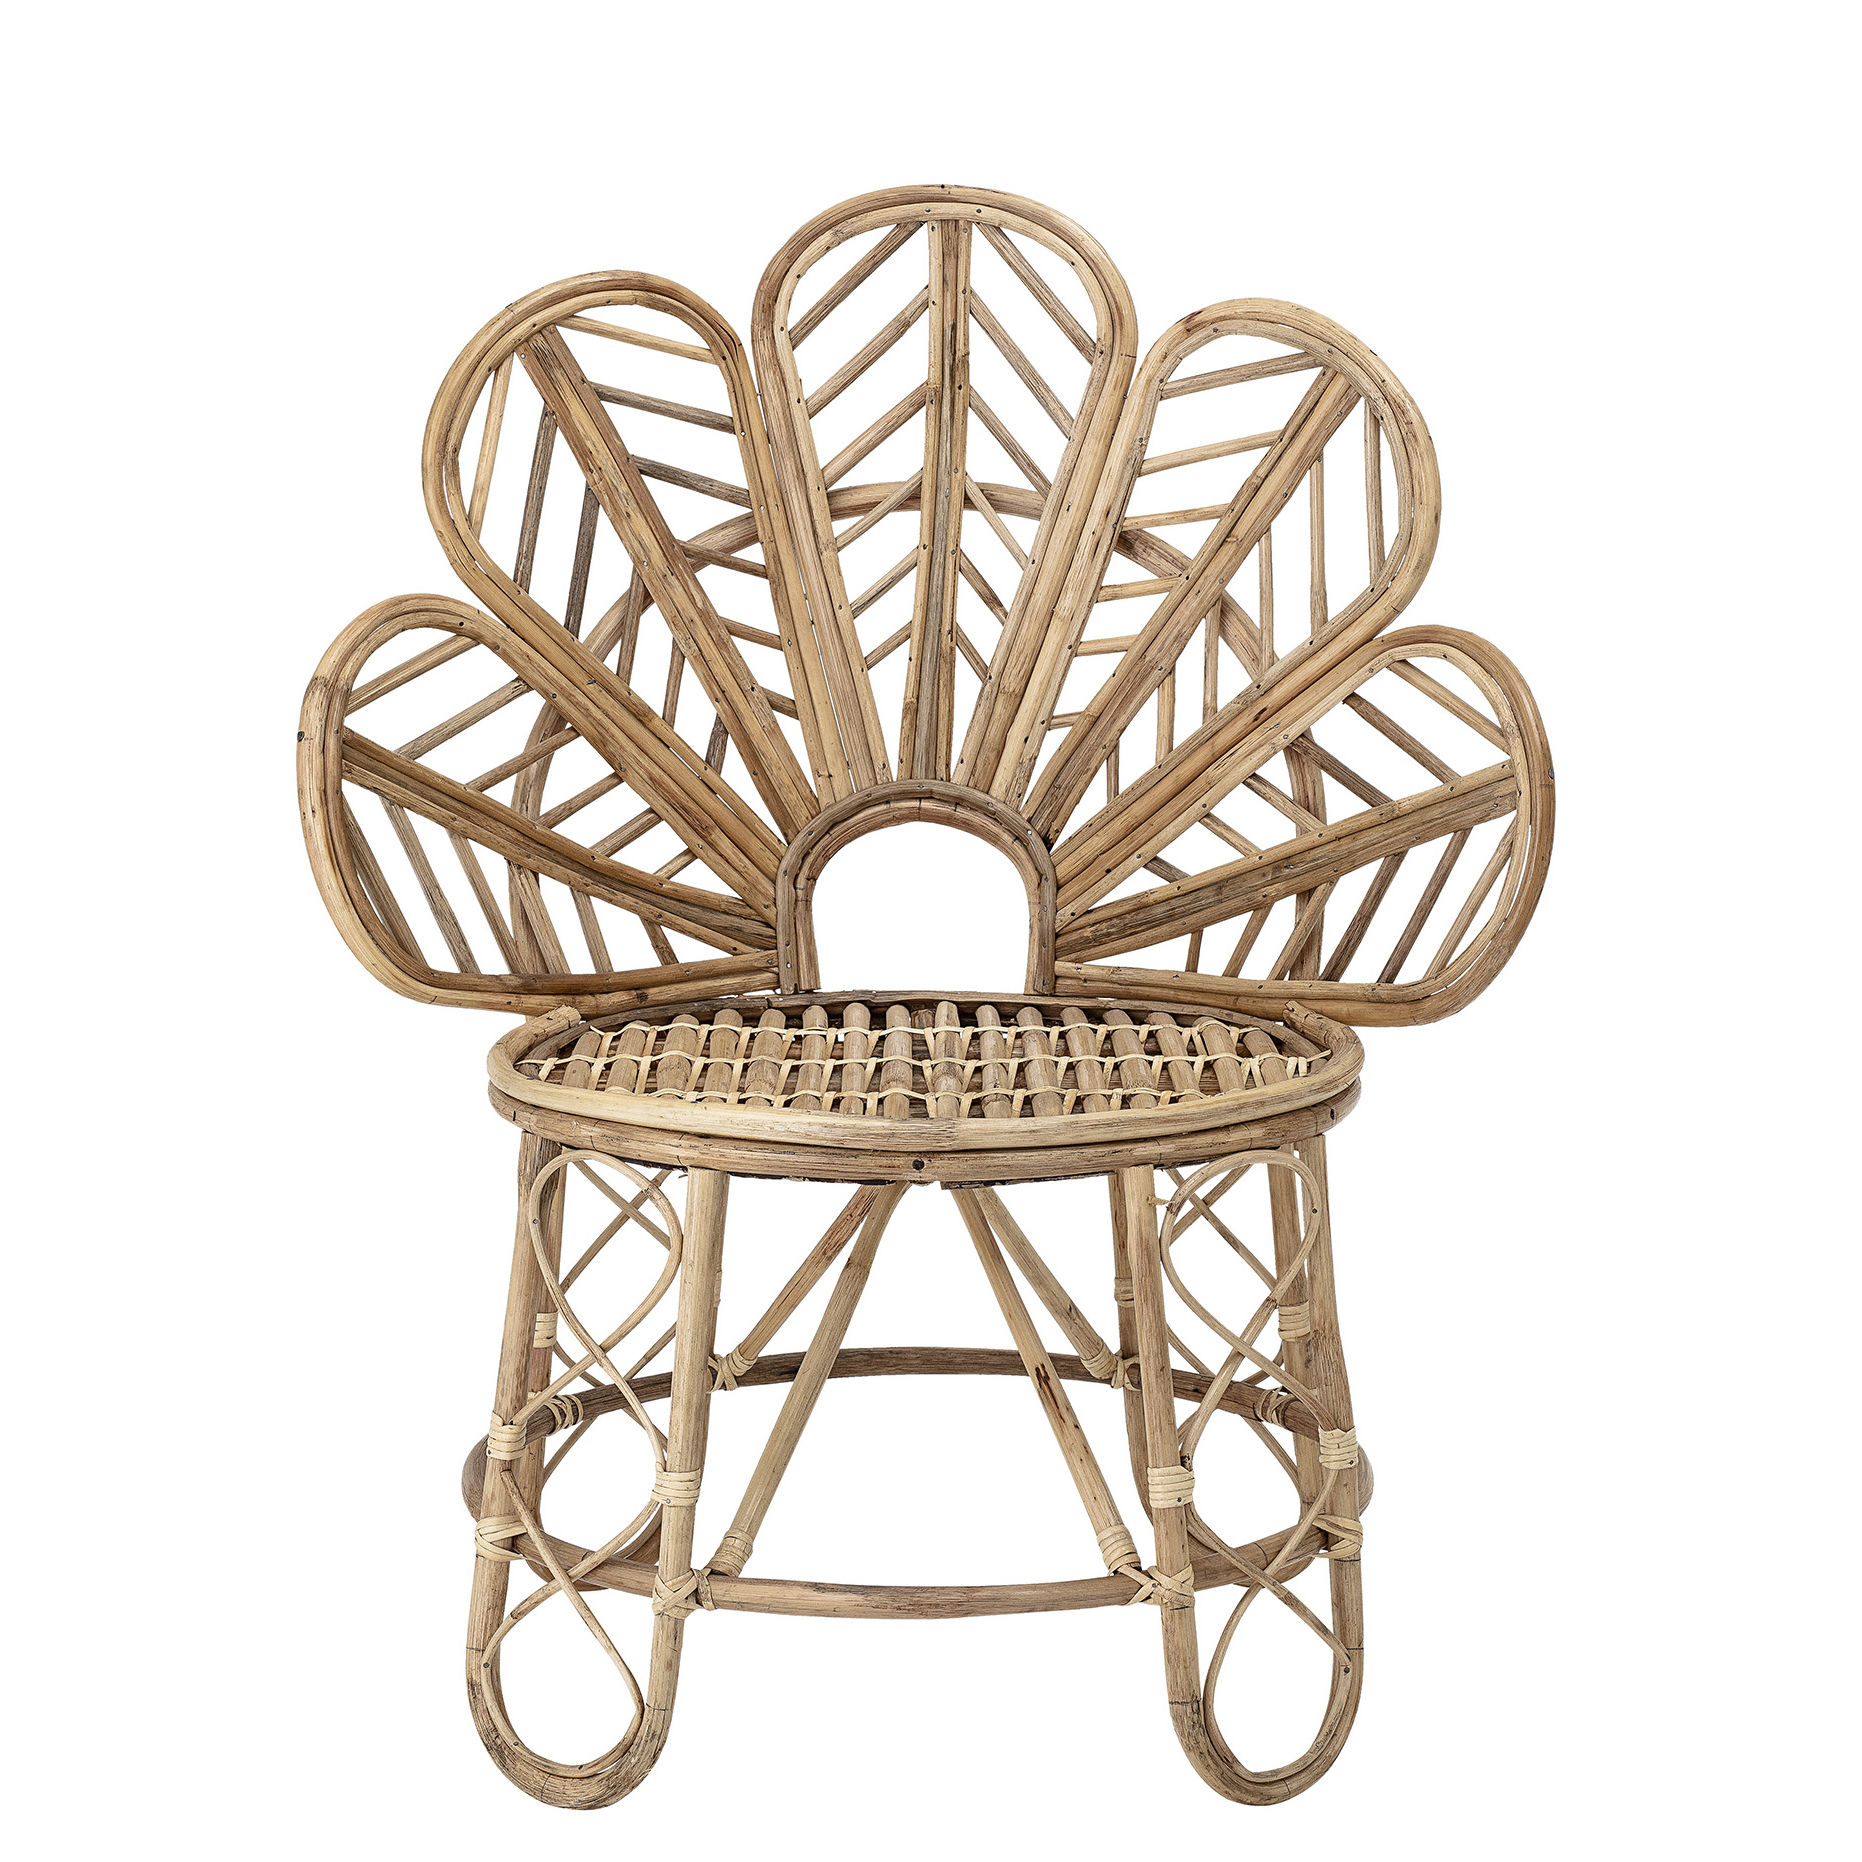 Furniture - Armchairs - Emmy Armchair - / Rattan by Bloomingville - Natural - Rattan